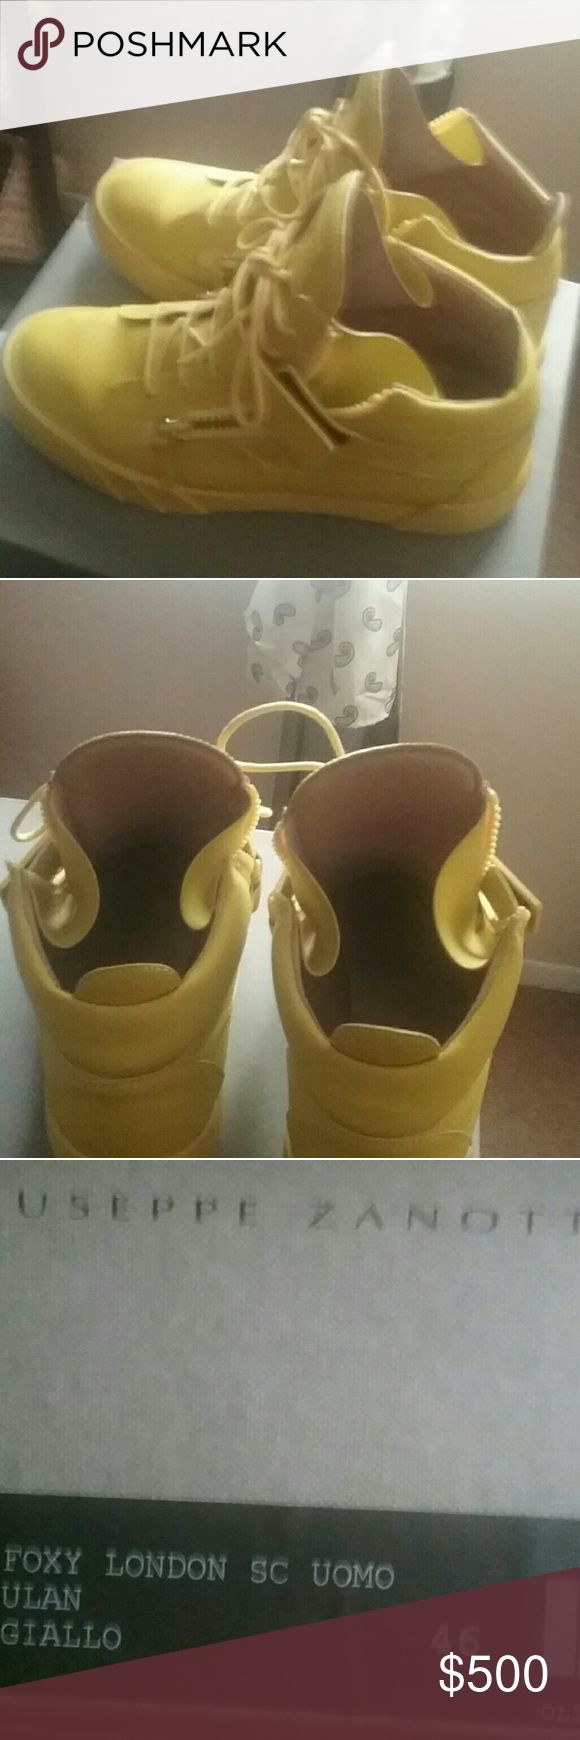 Giuseppe Zanotti Mens Sneakers Size 46. Mustard yellow with original box and will dustbag Giuseppe Zanotti Shoes Sneakers